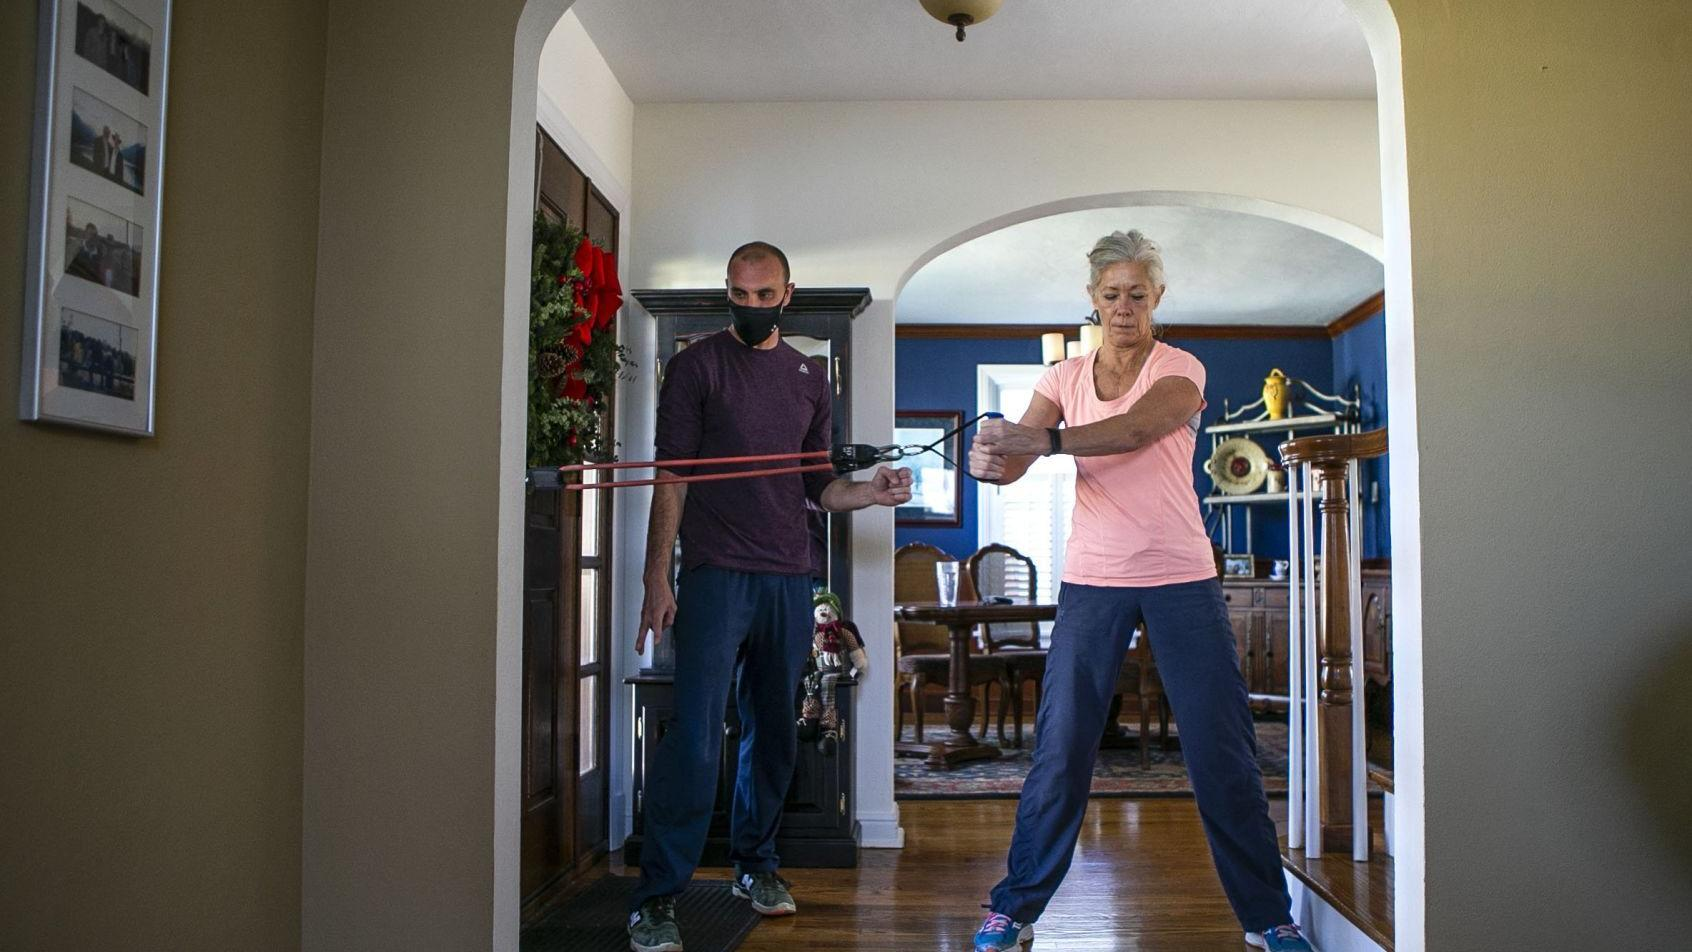 Photos: Training at home during the pandemic